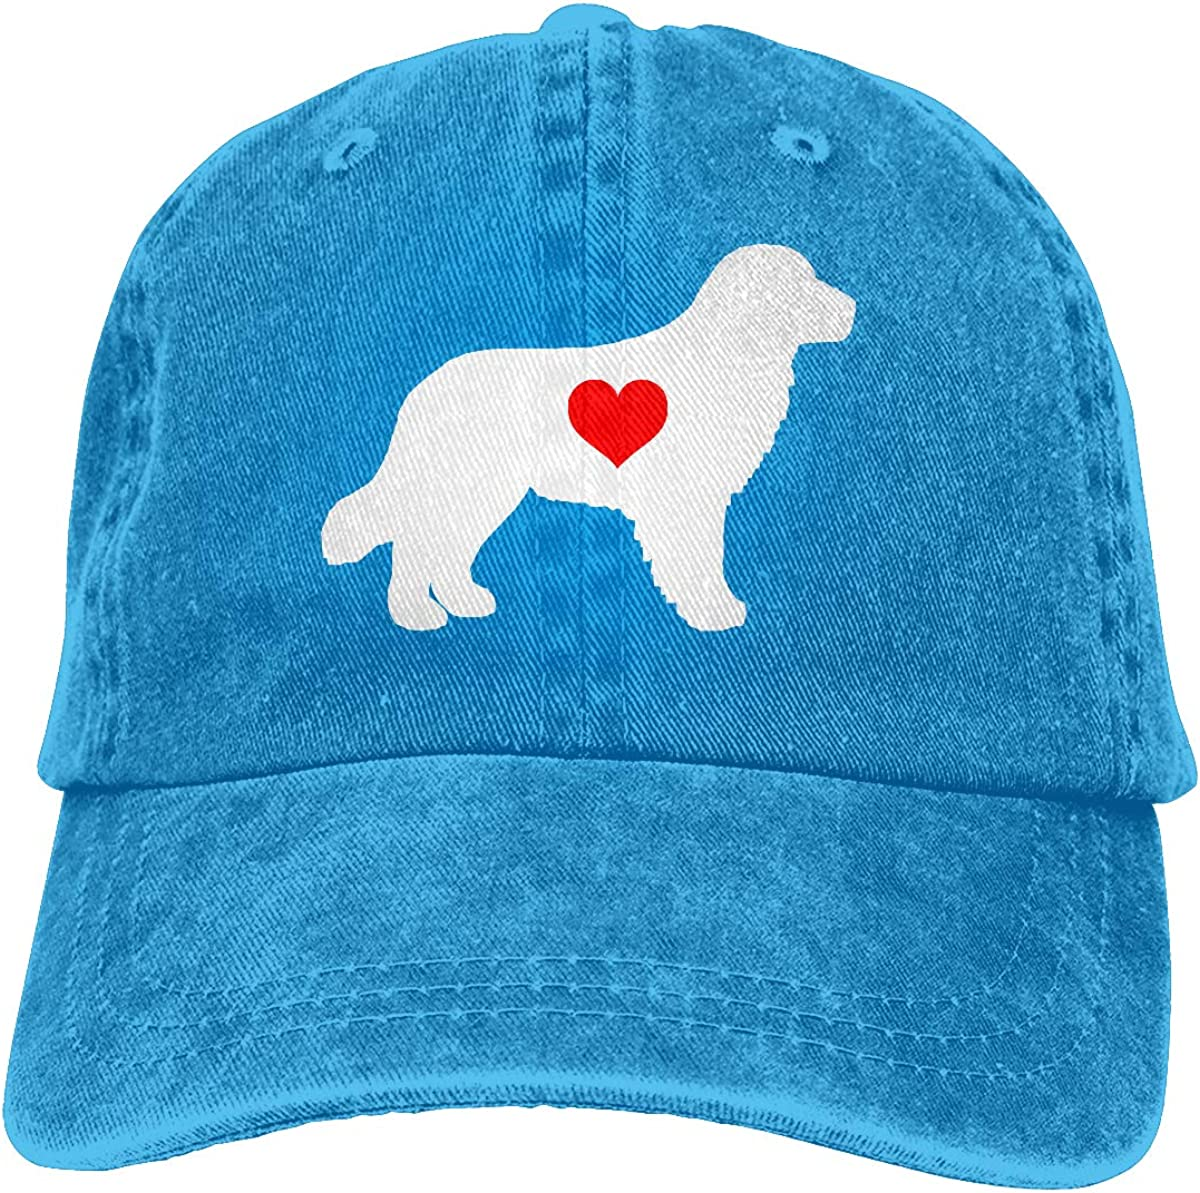 Golden Retriever with Heart-1 Mens Womens Adjustable Jeans Baseball Hat Yarn-Dyed Denim Sun Hat